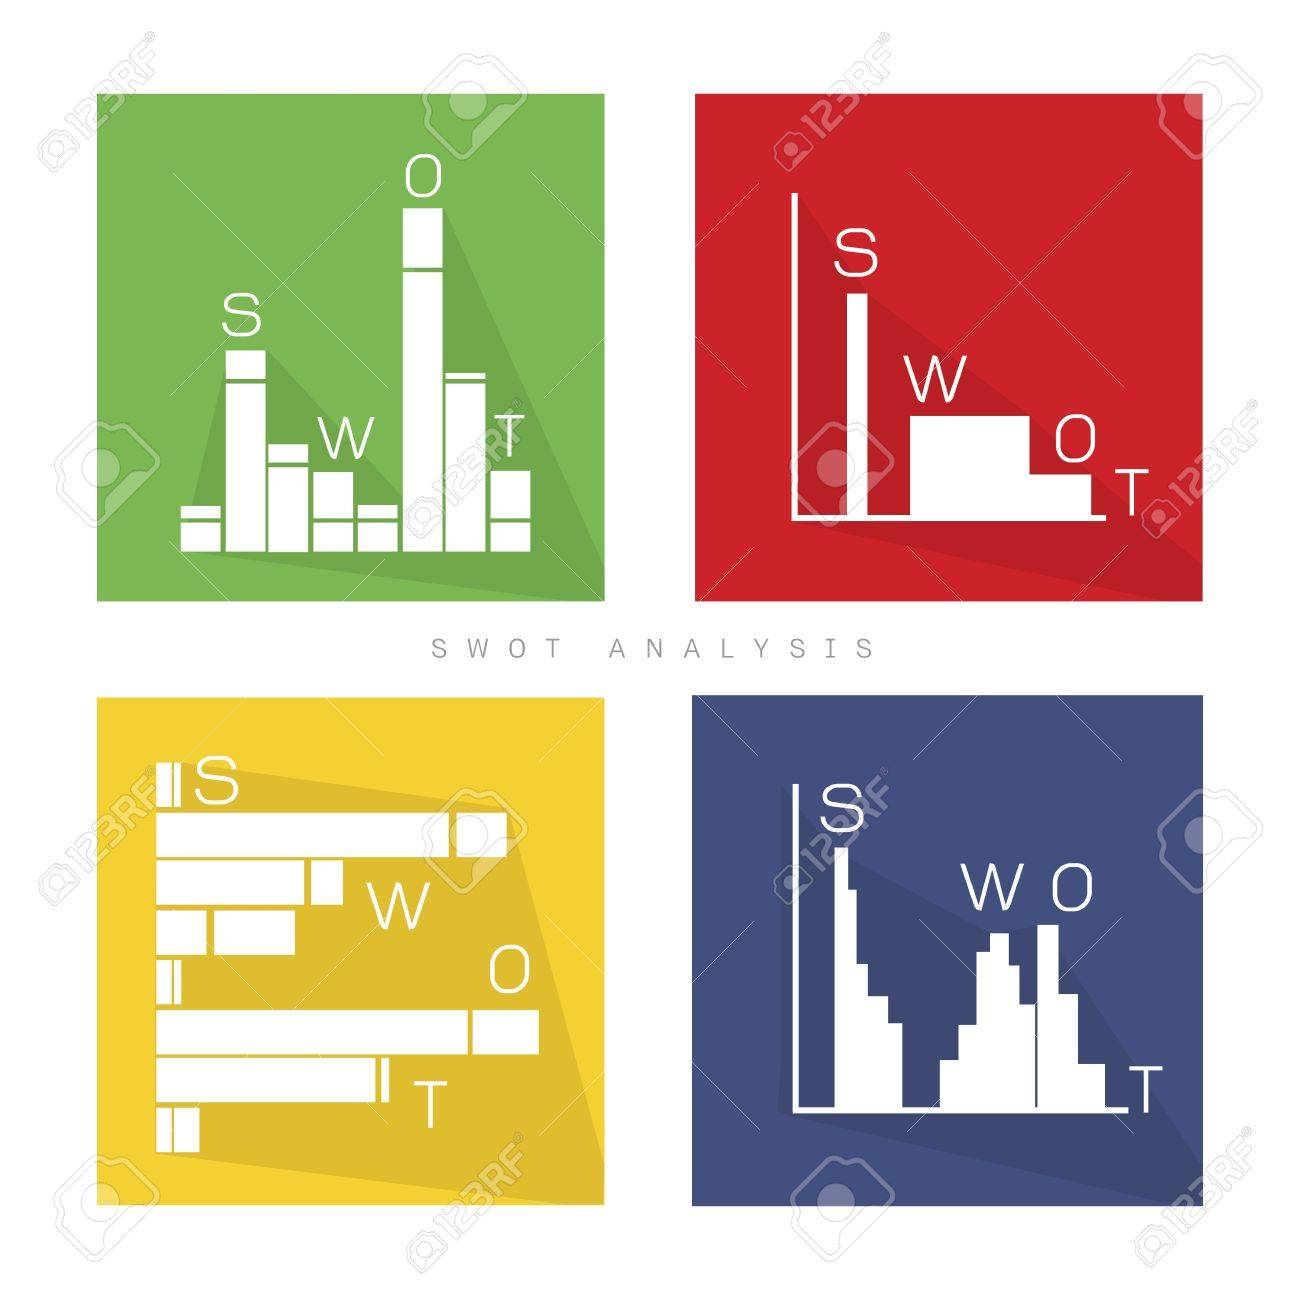 Business Bar Chart Of SWOT Analysis Matrix A Structured Planning Method For  Evaluate Strengths, Weaknesses